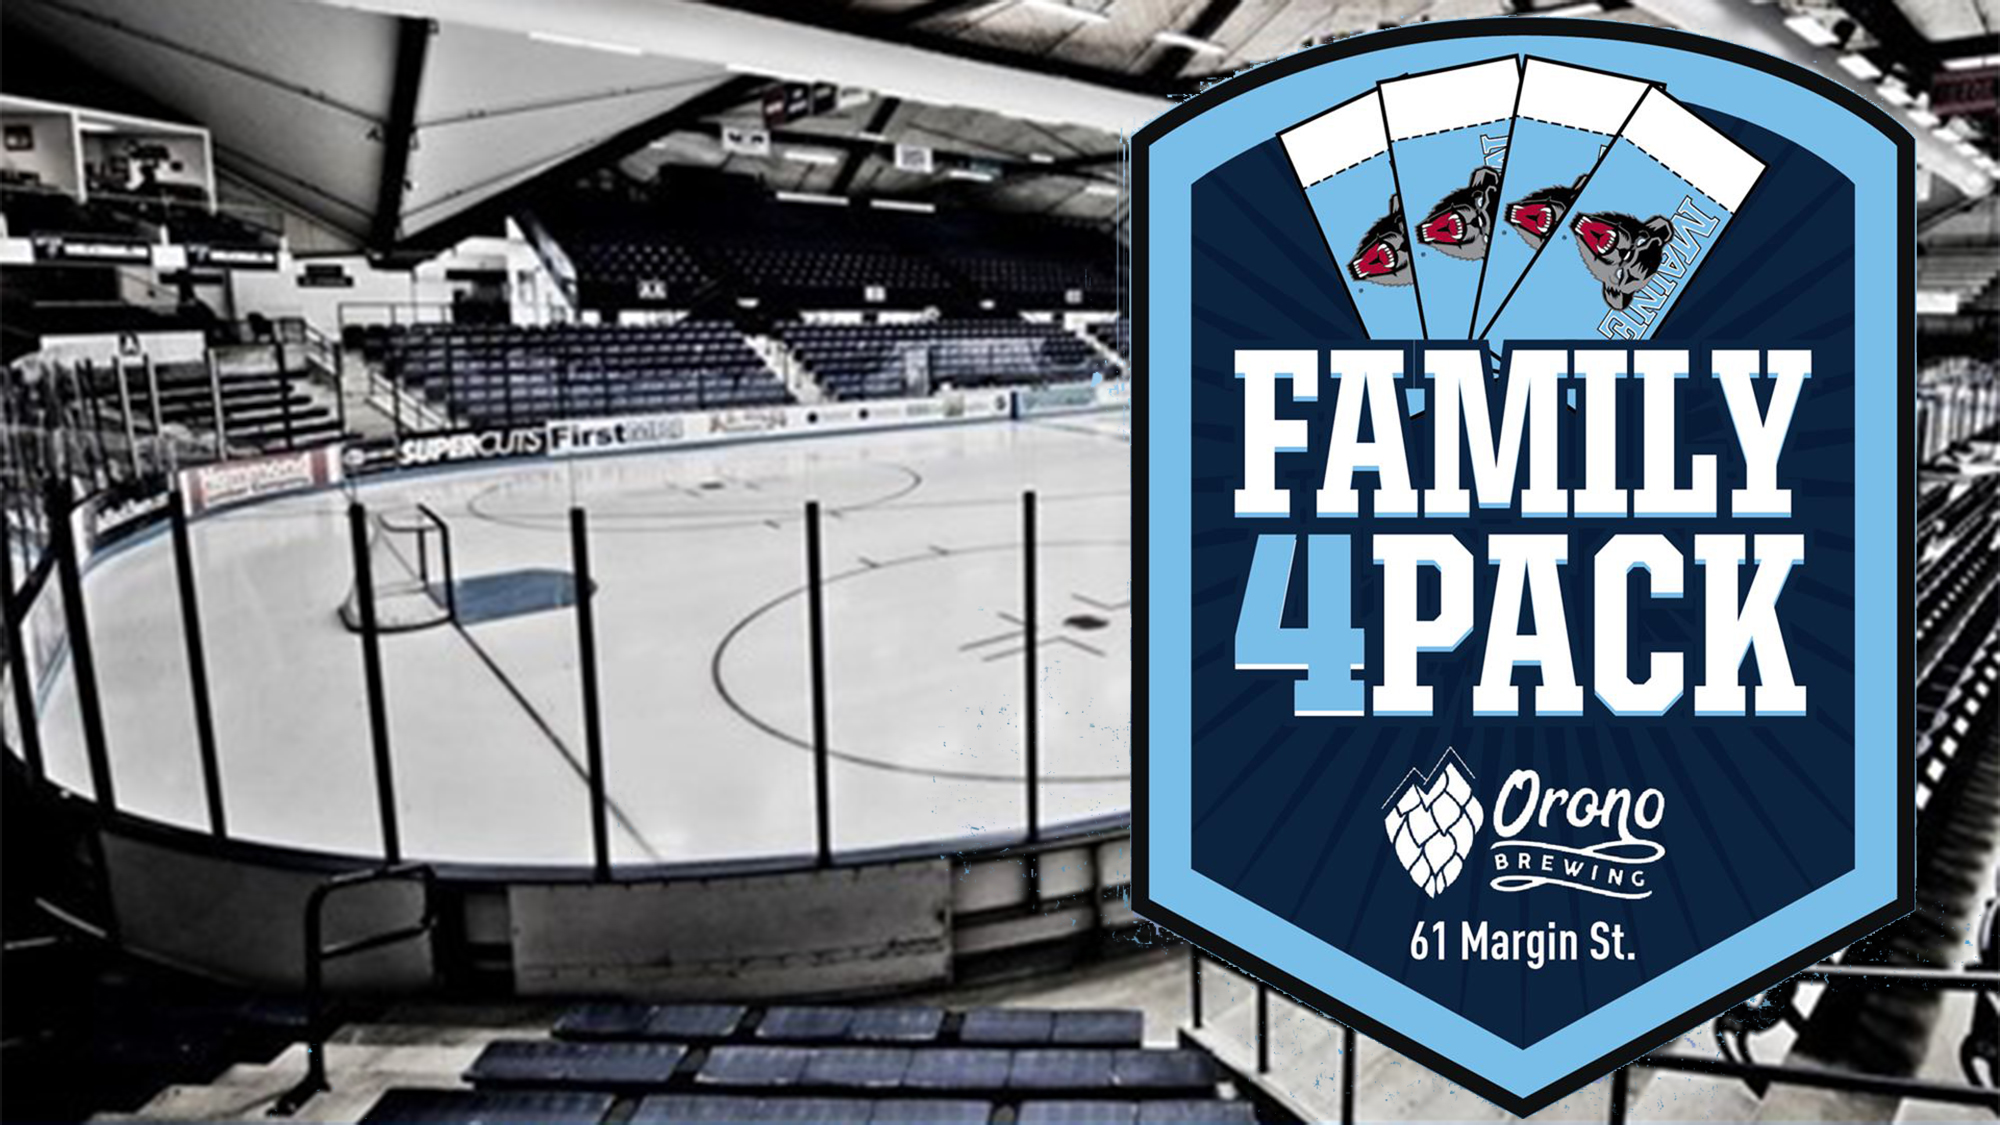 UMaine Athletics, Orono Brewing Company 'Family 4-Pack' Ticket Deal